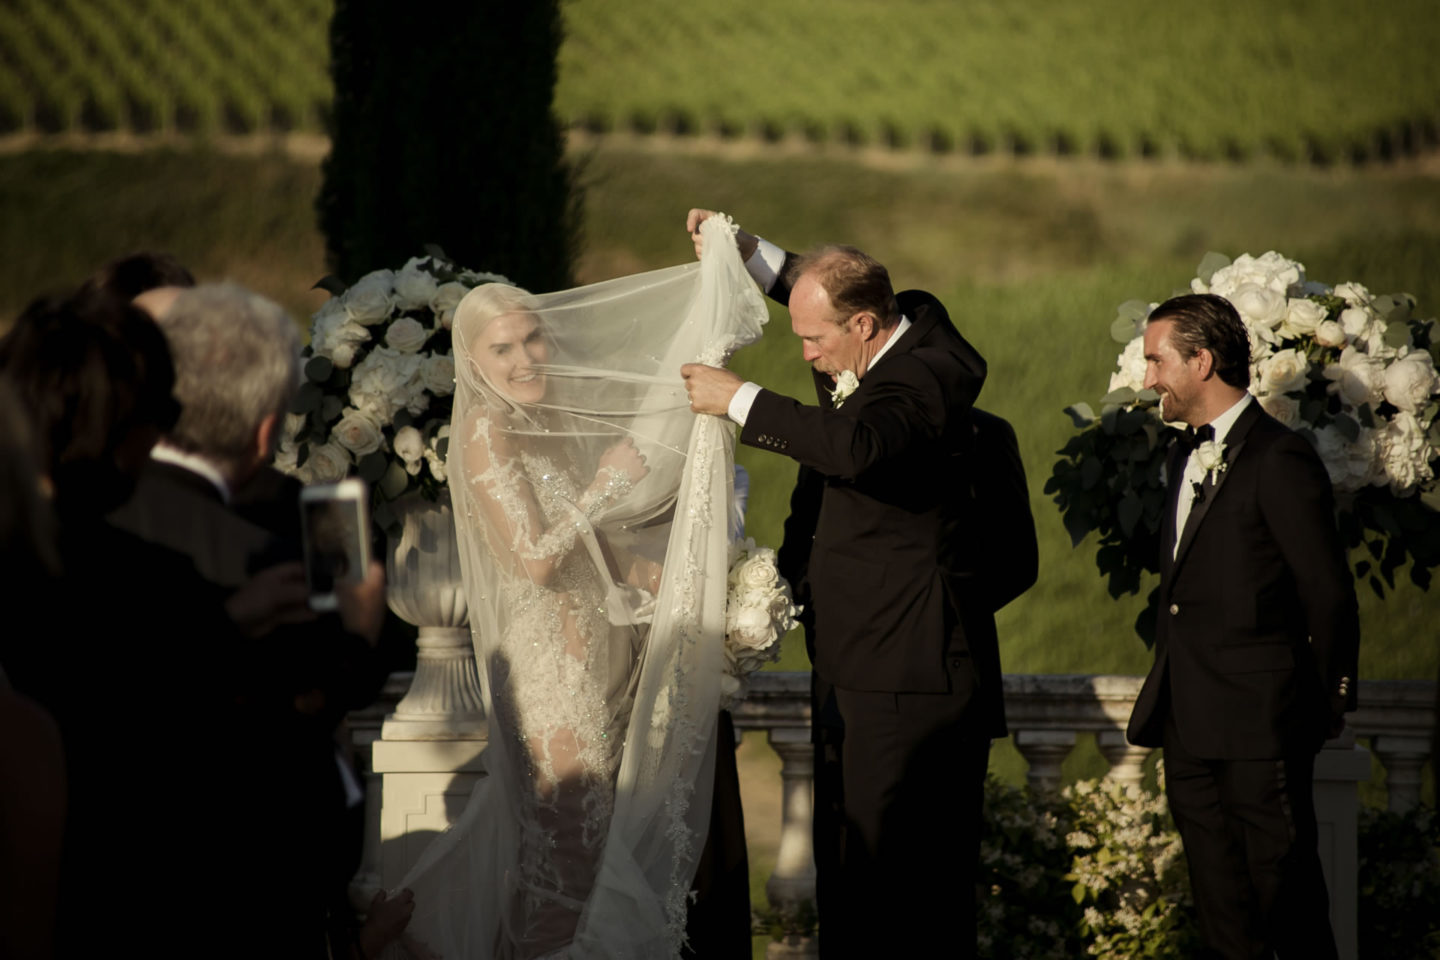 Laugh :: Exciting wedding in the countryside of Siena :: Luxury wedding photography - 36 :: Laugh